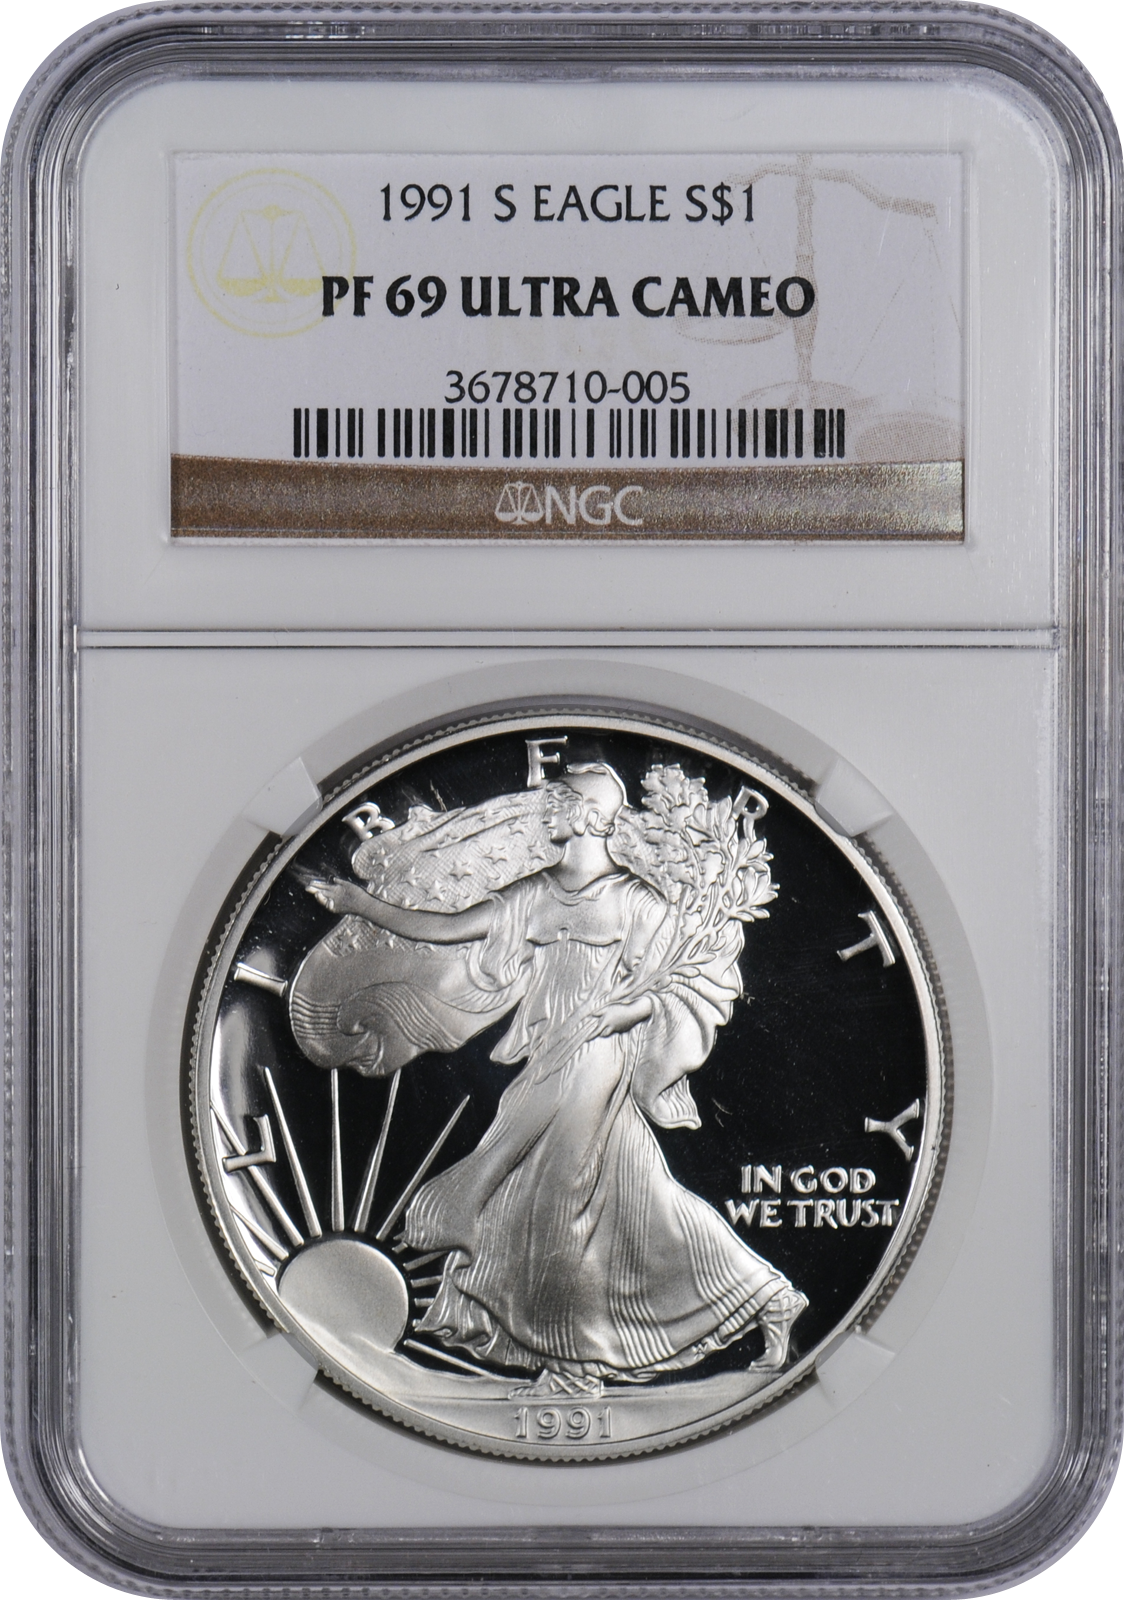 This 1991 S Silver Eagle Pf69 Uc Is A Popular Coin For Investors And Collectors Alike This Coin Has A Face Value Of One Us Do Eagle Eagle Coin Silver Bullion